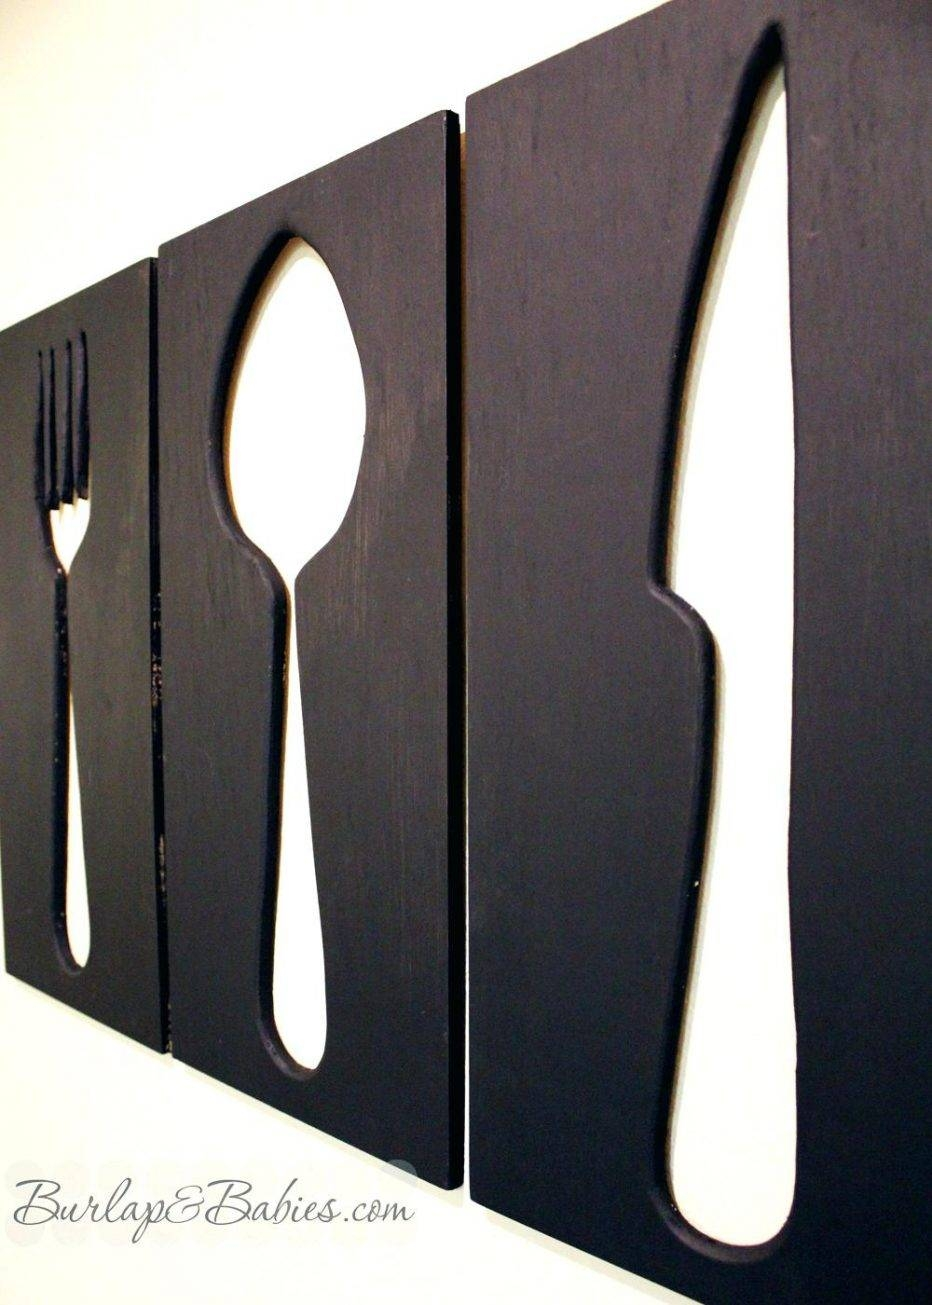 Wall Decor : Wall Interior Kitchen Utensils Wall Art Kitchen Throughout Latest Large Utensil Wall Art (View 4 of 20)